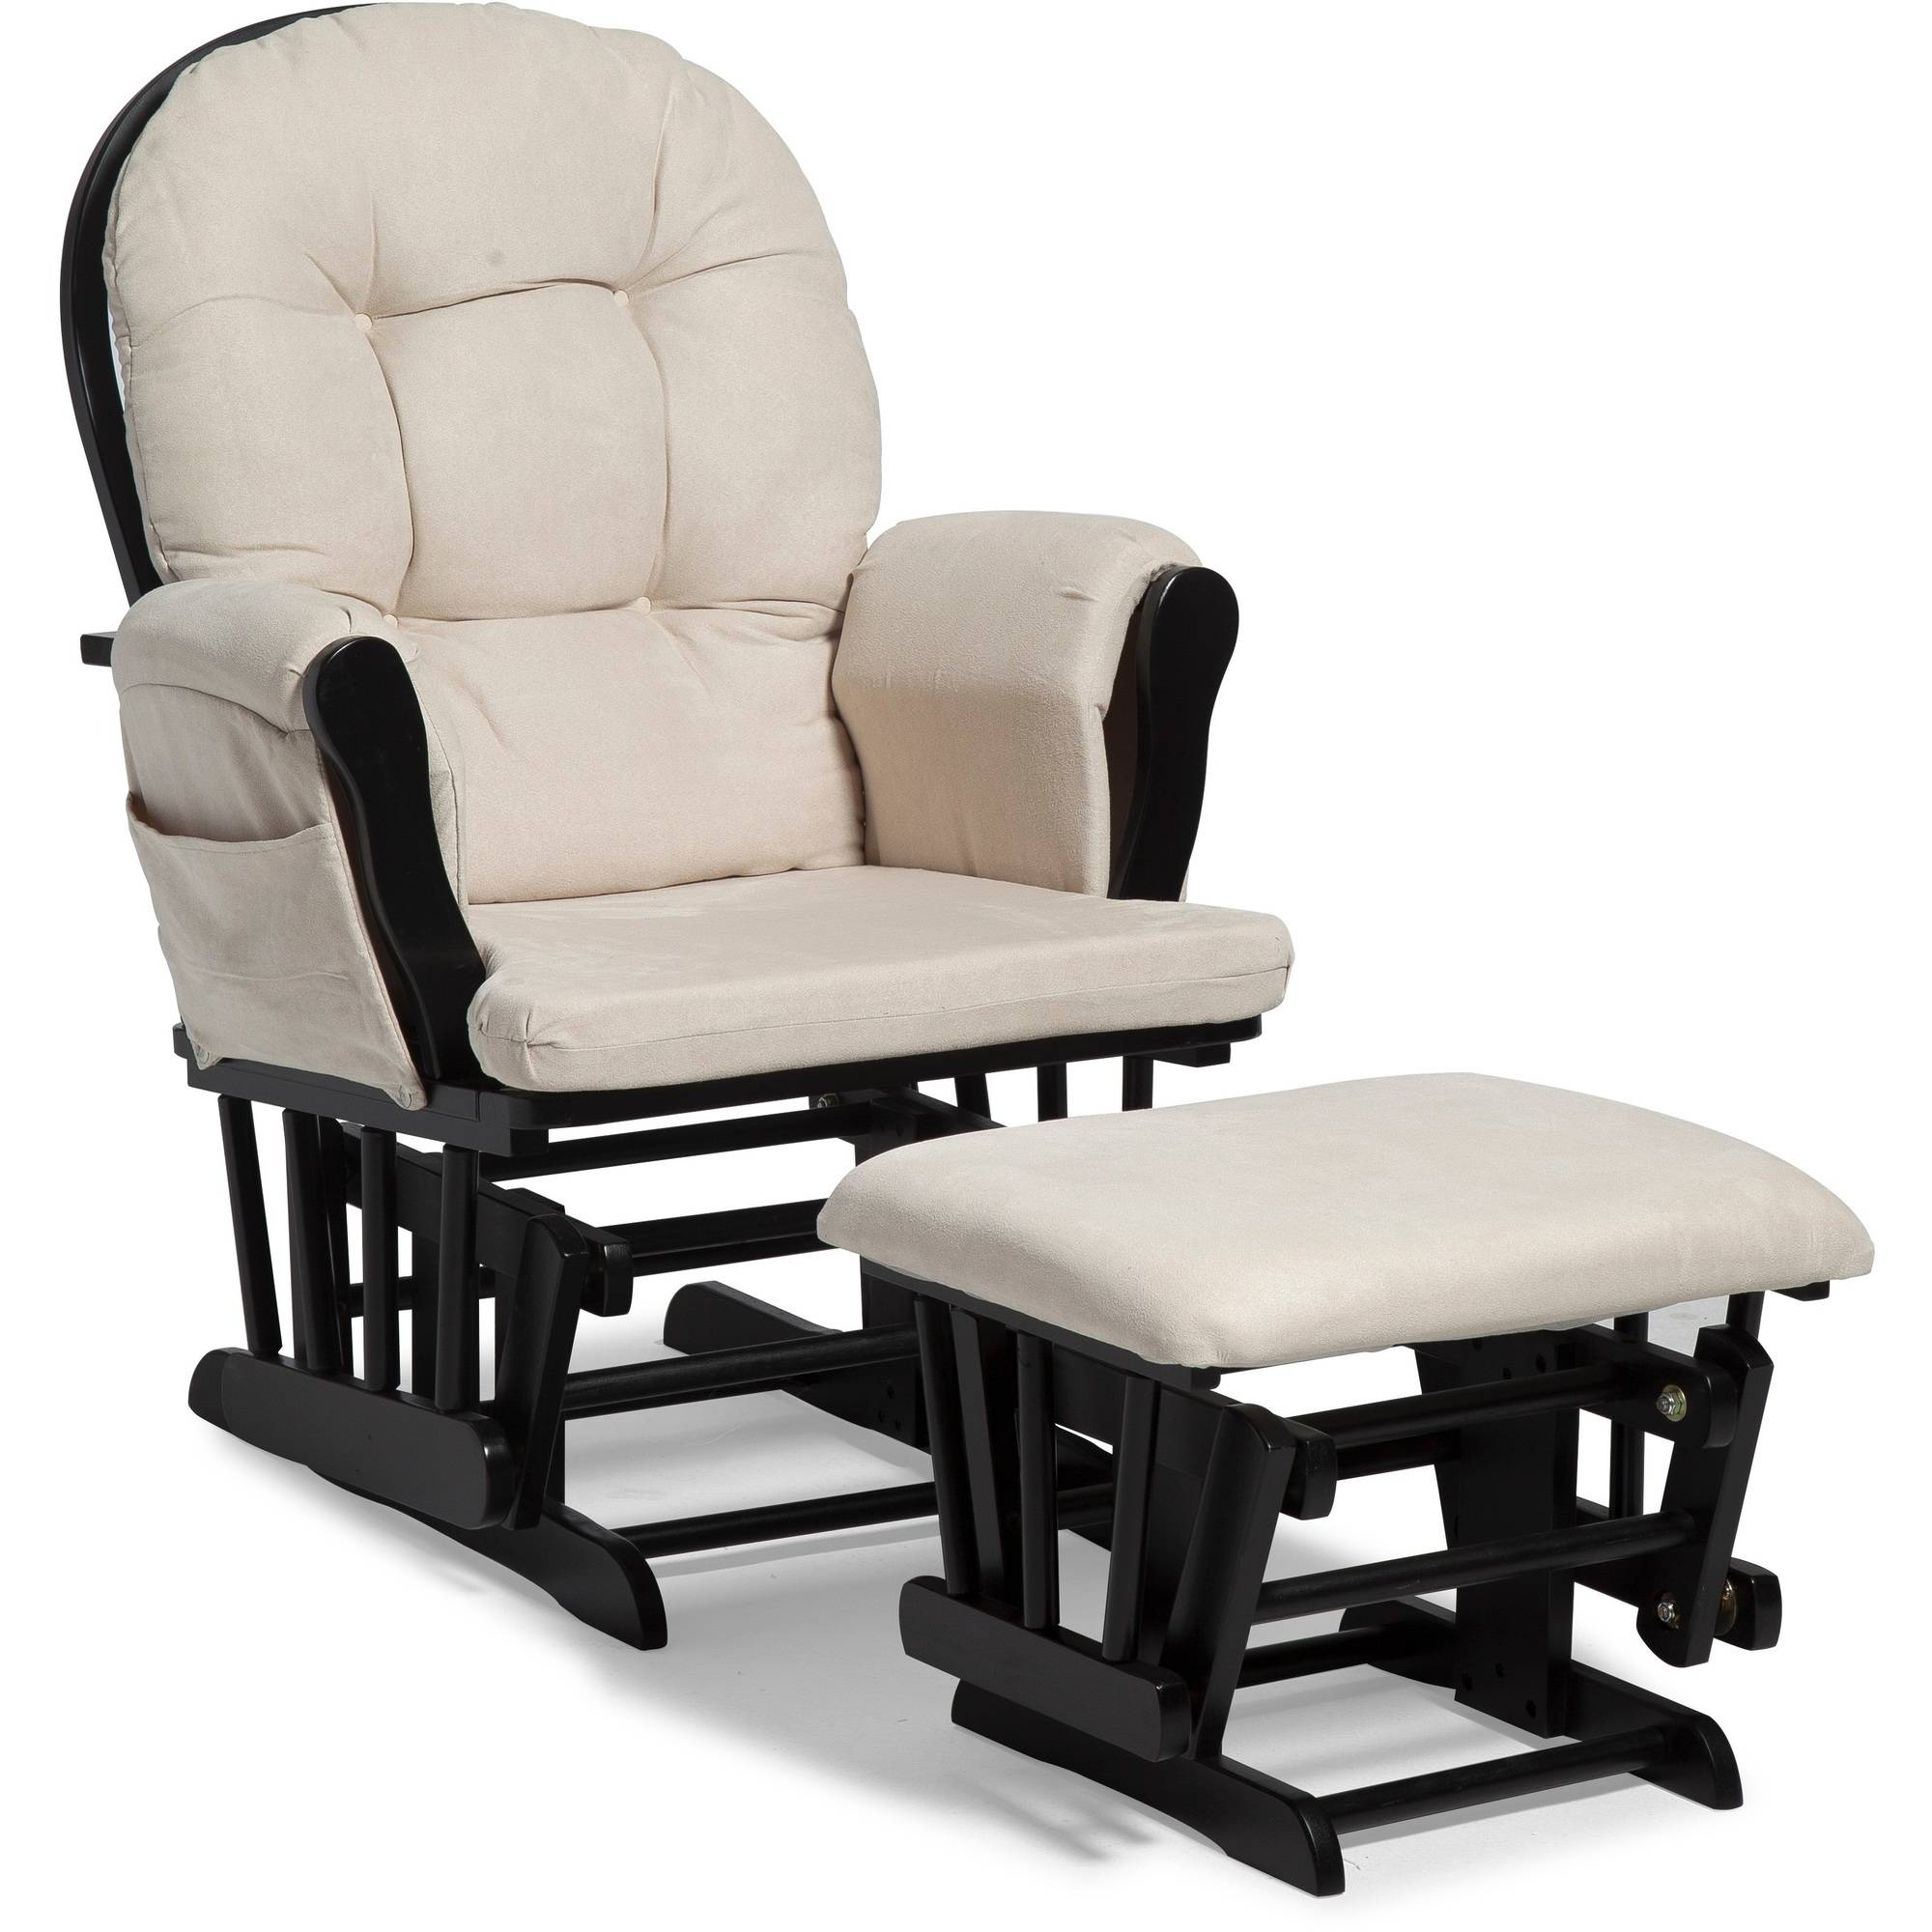 Baby glider chair - Storkcraft Hoop Glider And Ottoman Black With Beige Cushions